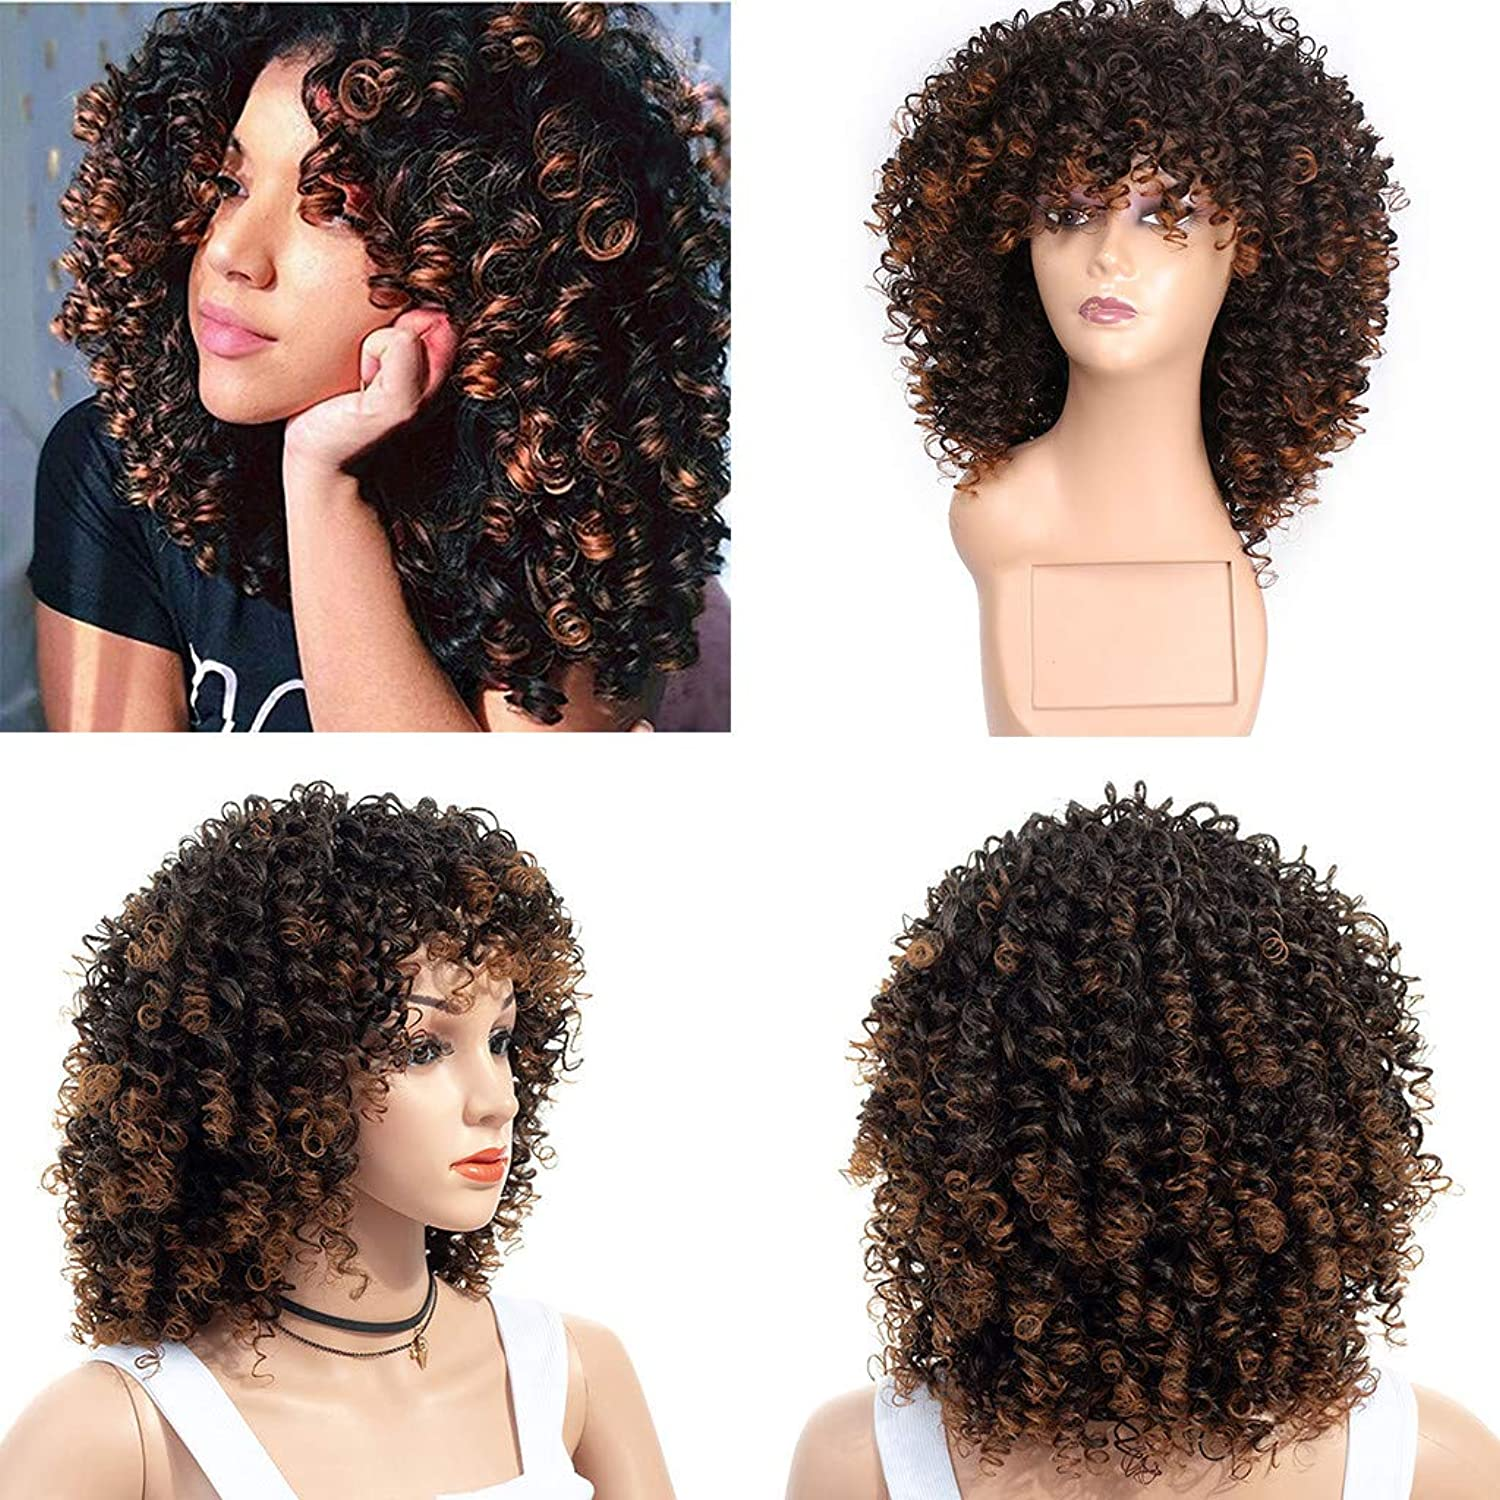 FORUU Wigs, 2019 Valentine's Day Surprise Best Gift For Girlfriend Lover Wife Party Under 5 Free delivery hort Afro Curly Mix Gray Hair Wig with Bangs Synthetic New Arrival Cheap Wigs